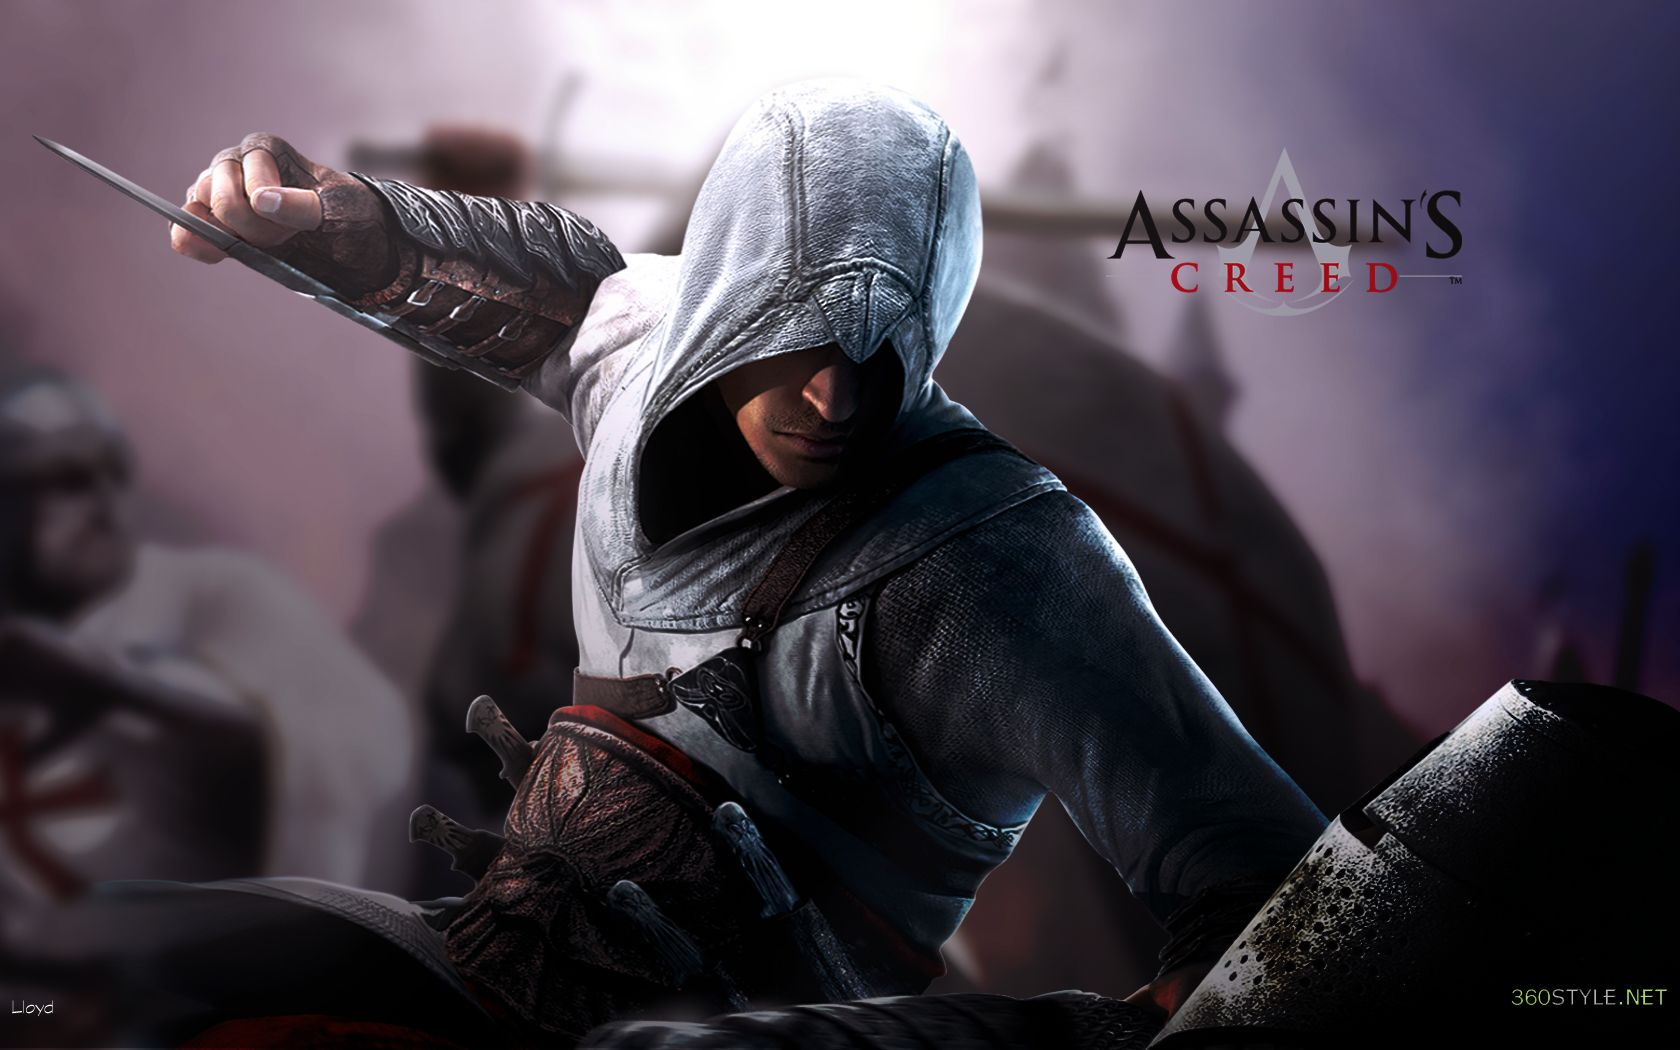 Free Download Assassins Creed Wallpaper 1680x1050 Assassins